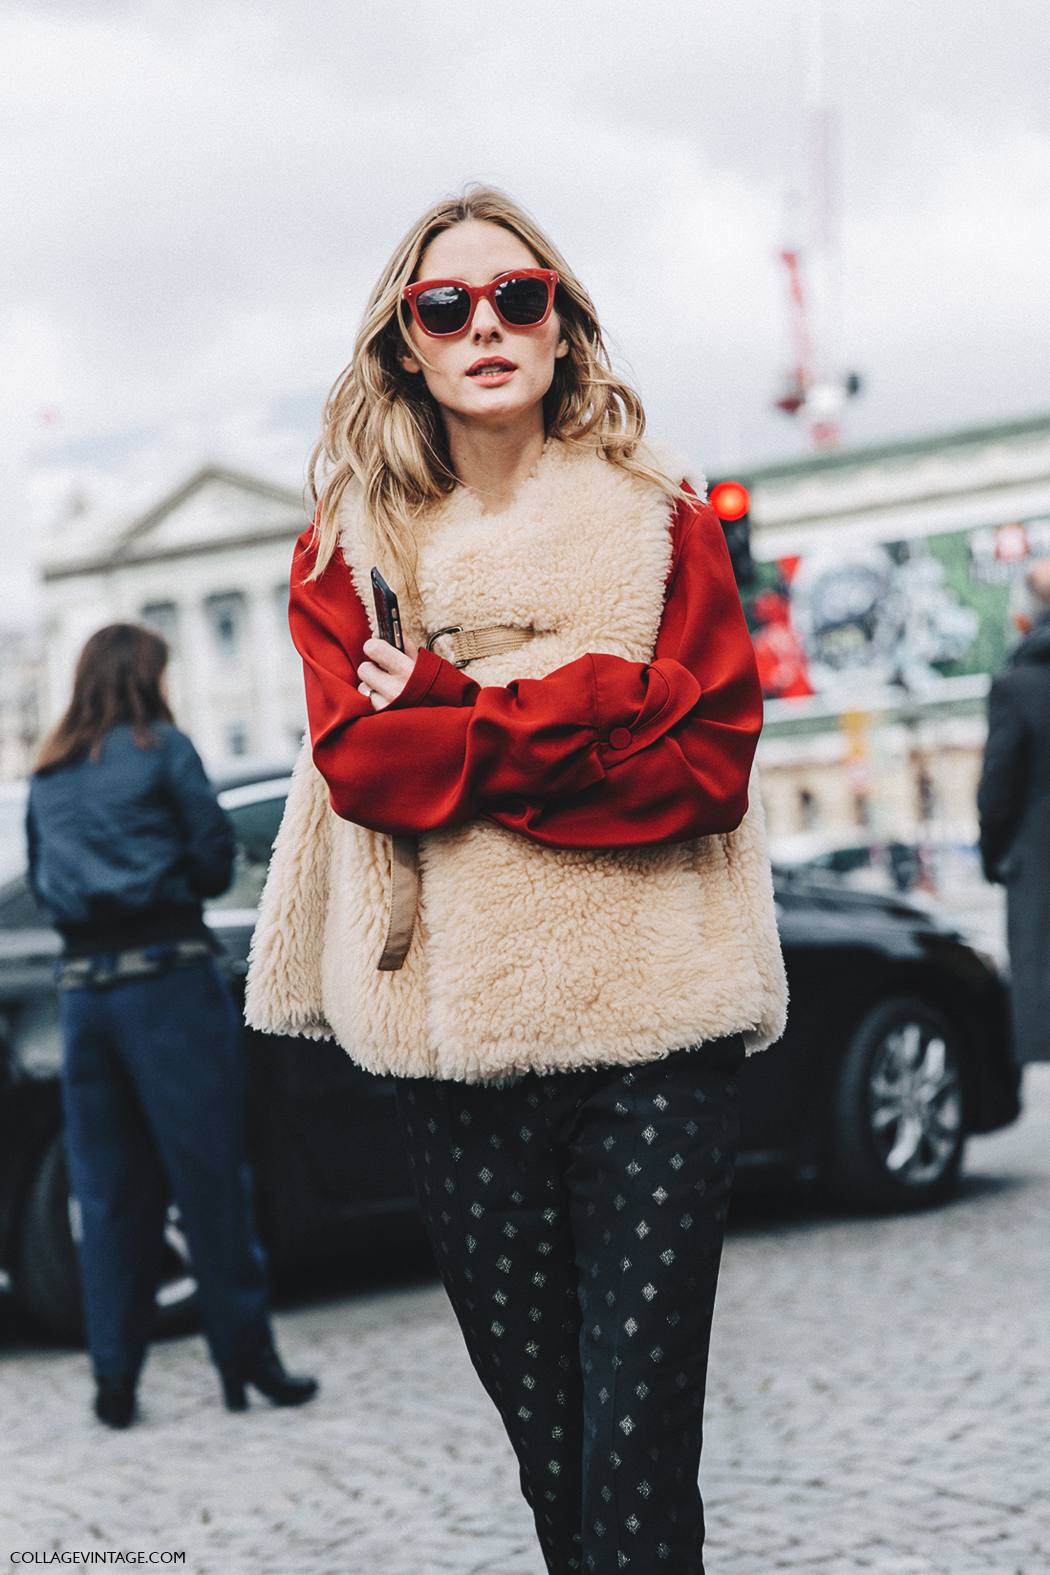 PFW-Paris_Fashion_Week_Fall_2016-Street_Style-Collage_Vintage-Olivia_Palermo-Fur_Vest-Red_Blouse-Printed_Trousers-Chloe-5